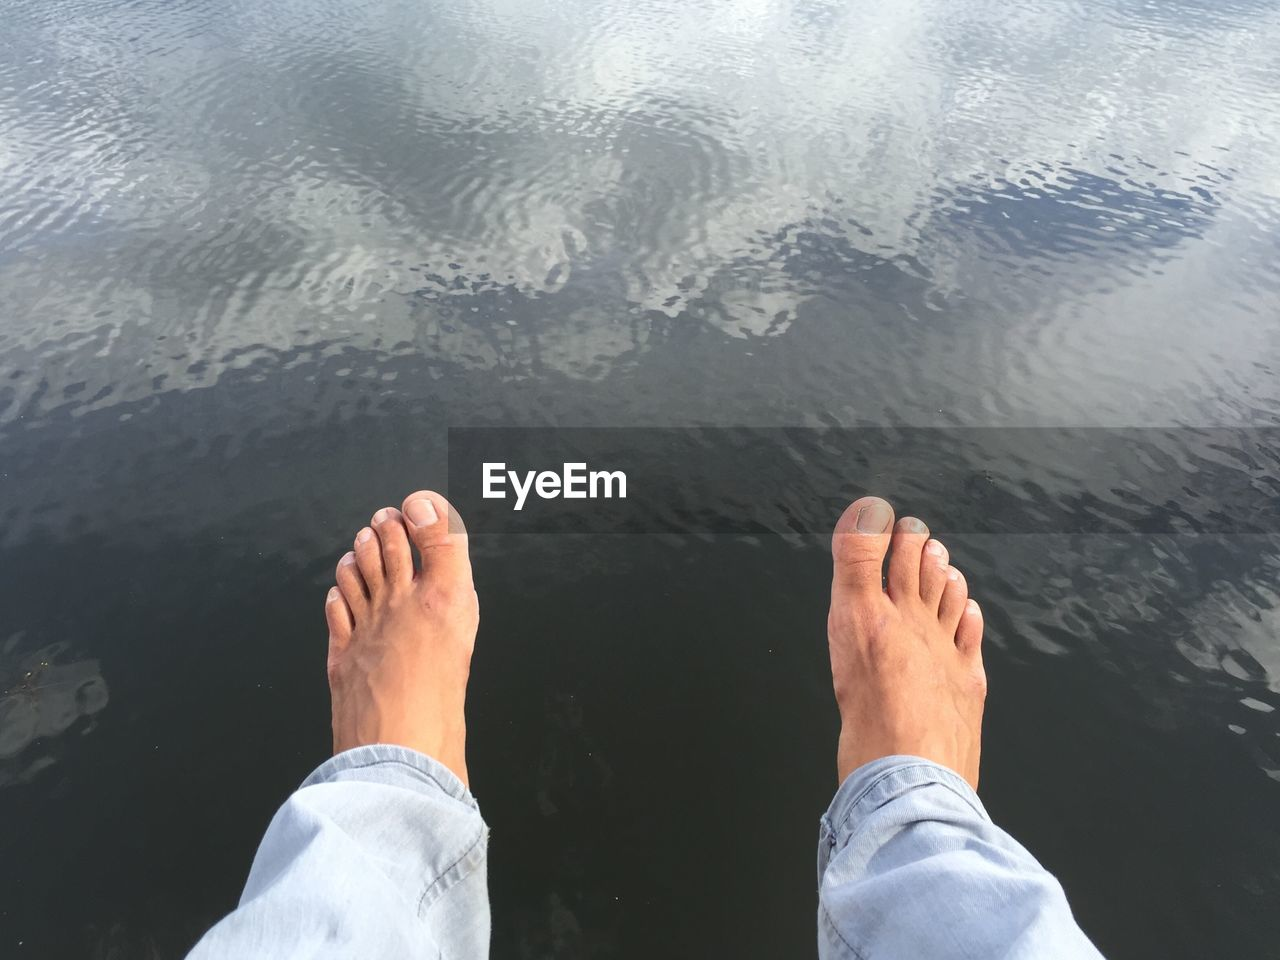 water, low section, barefoot, personal perspective, human leg, real people, one person, human foot, day, human body part, leisure activity, lake, men, reflection, outdoors, lifestyles, nature, close-up